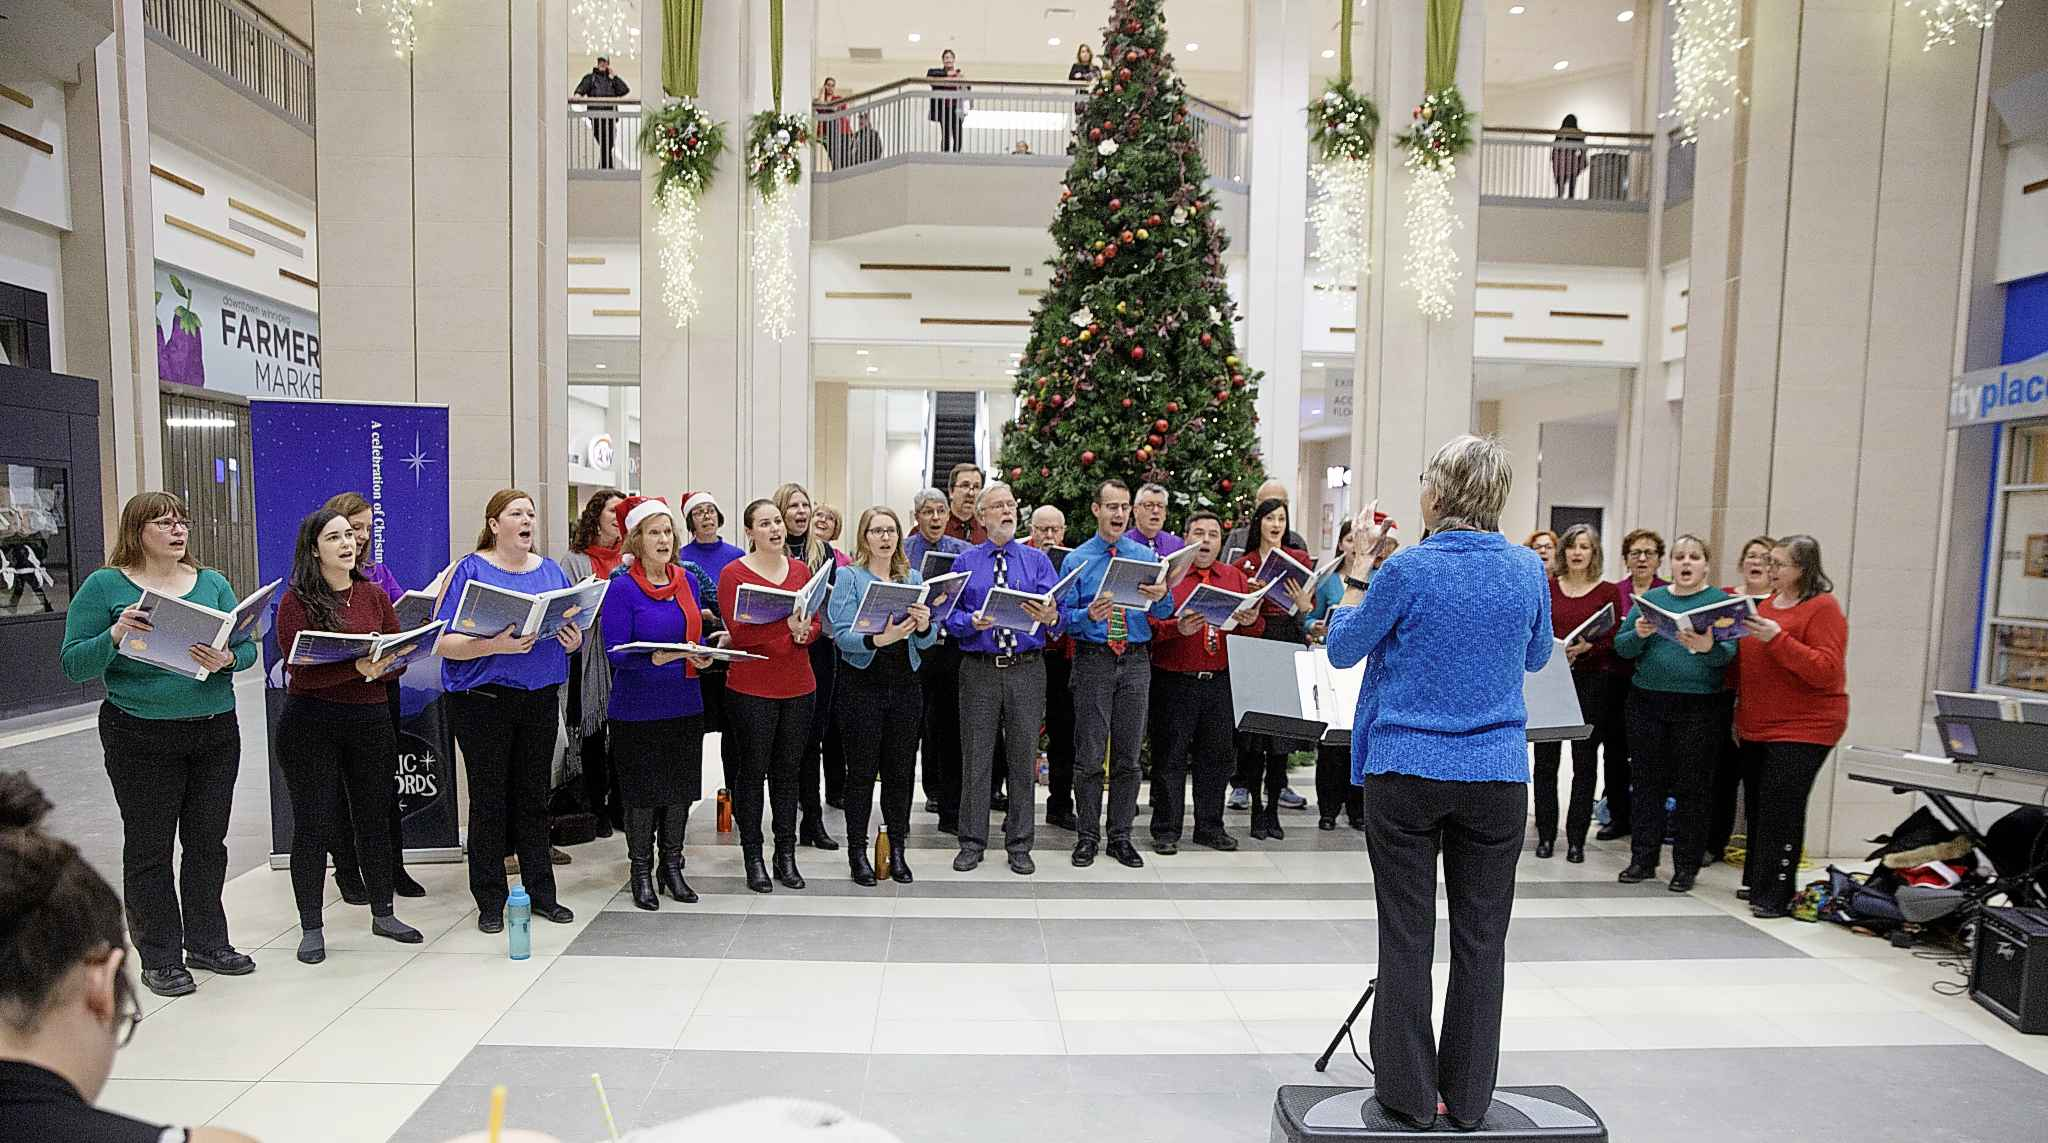 The Electric Chords — Manitoba Hydro's Christmas choir —still performs regularly every year. On Monday, they sang at Cityplace during the lunch hour. (Mike Deal / Winnipeg Free Press)